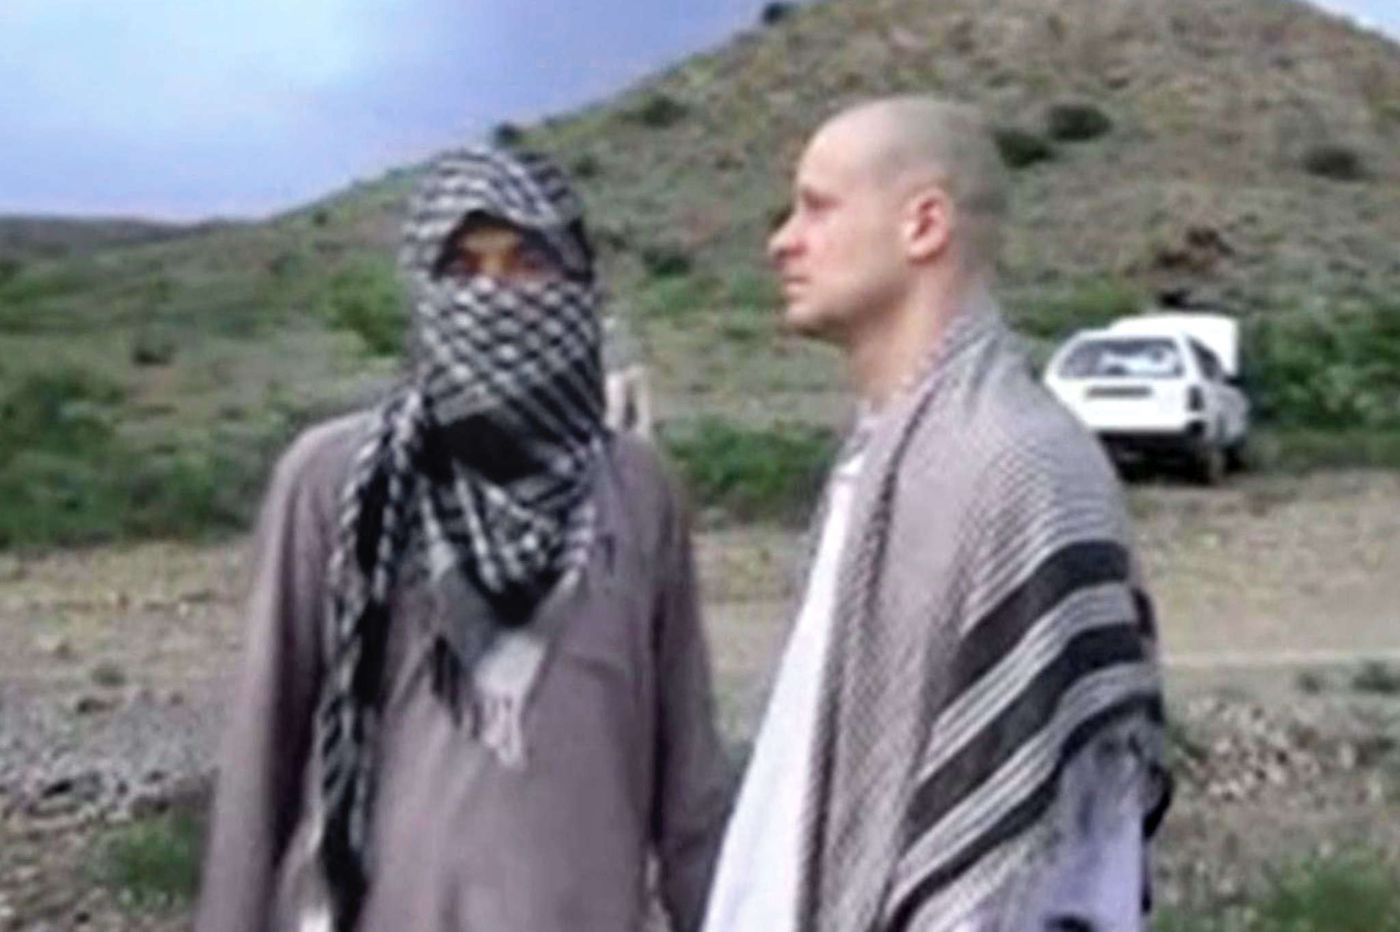 In new 'Serial' podcast, Bowe Bergdahl says he likened himself to Jason Bourne